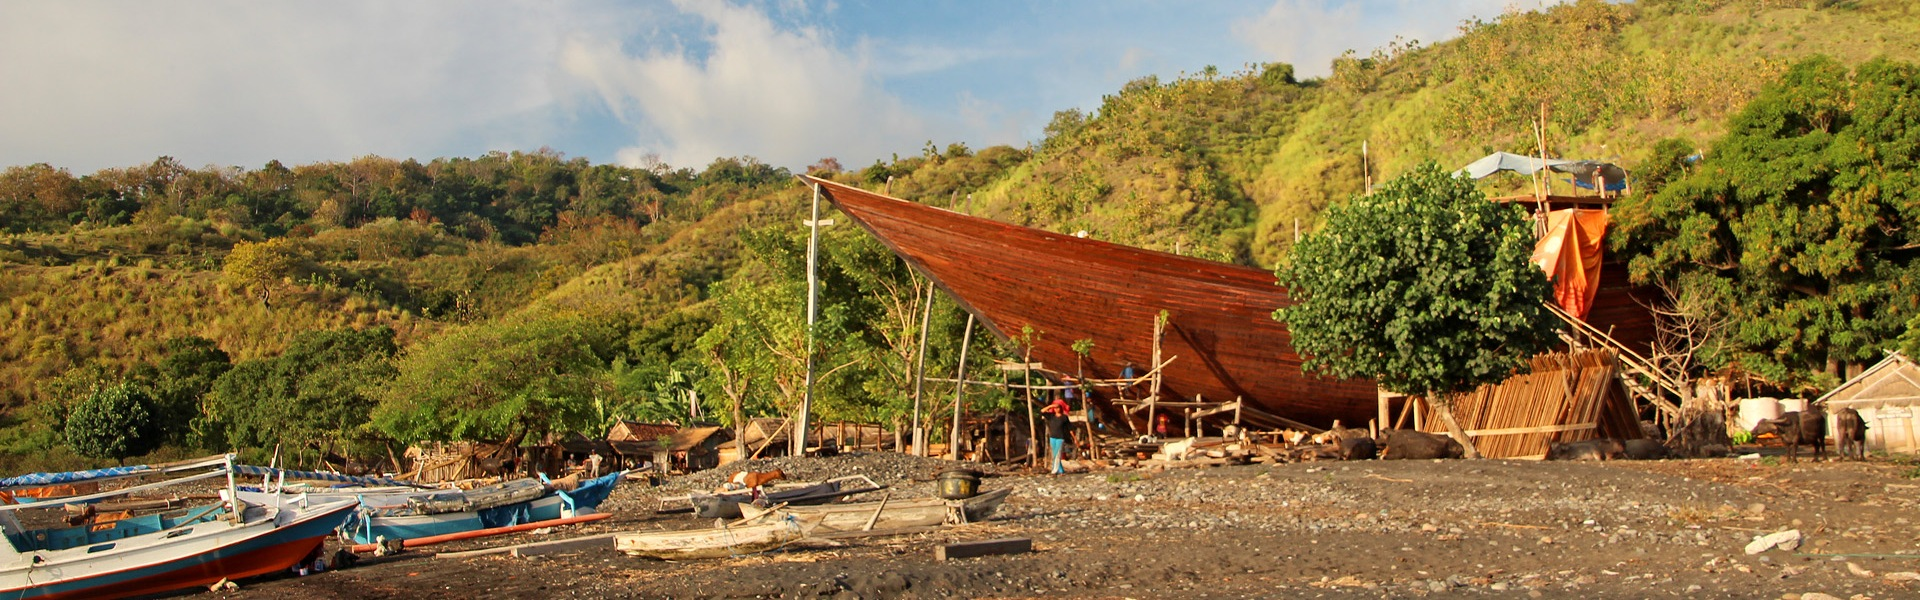 Phinisi boat building on Sangeang Api island, Sumbawa, Indonesia